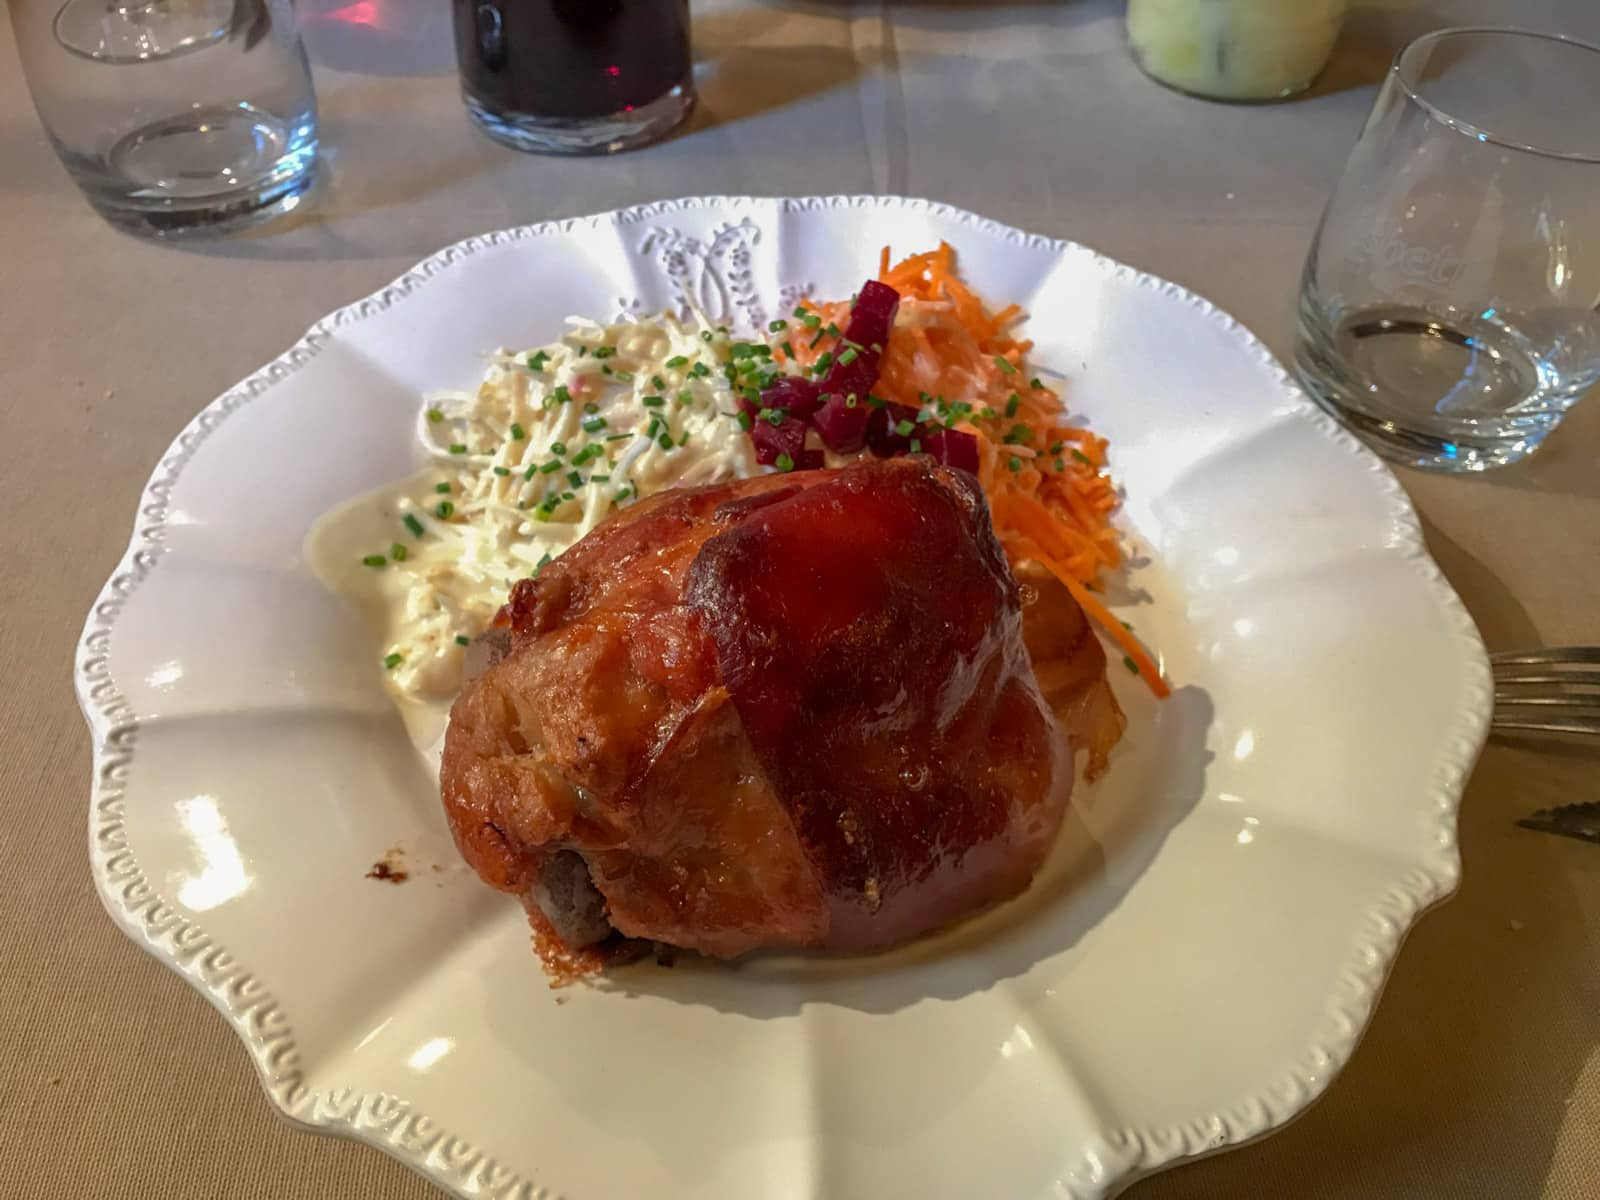 A white plate with pork knuckle and cabbage salad served on it